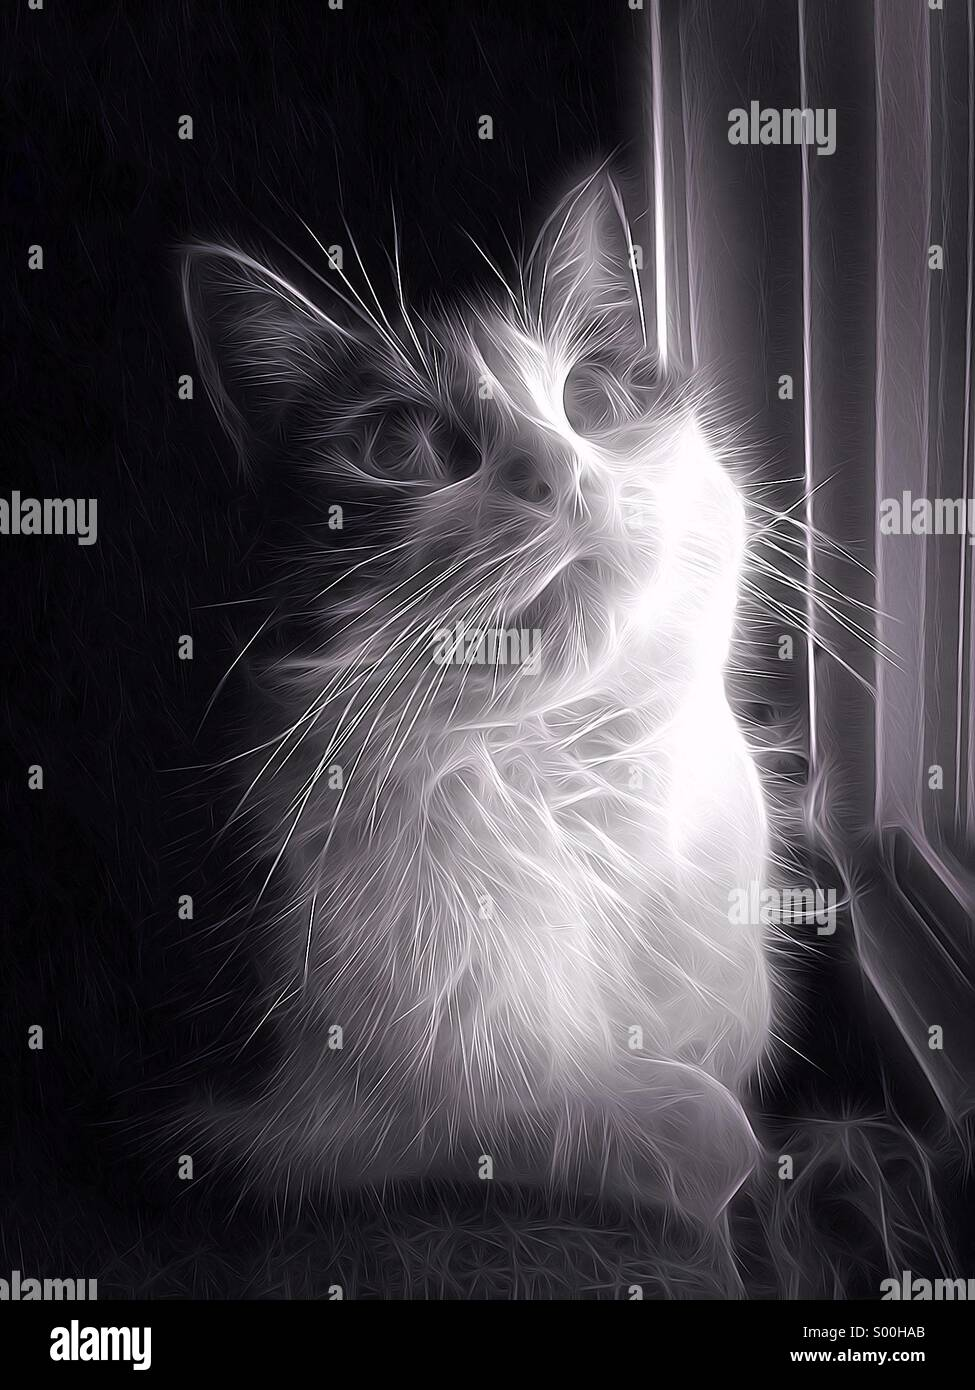 Electric kitty cat on paws - Stock Image